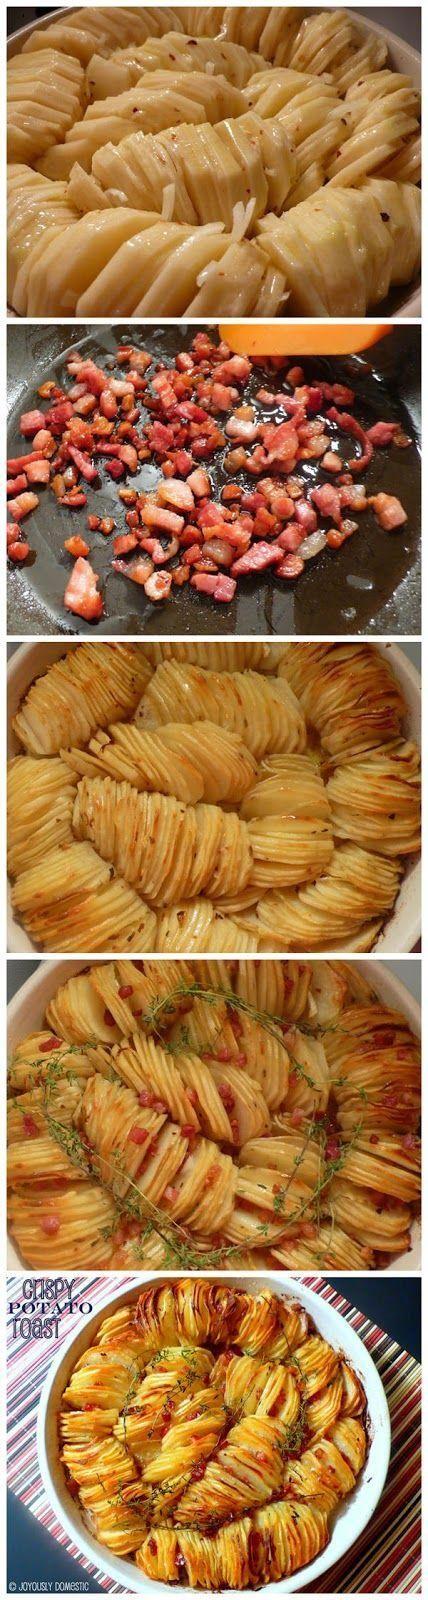 Crispy Potato Roast Delicious Christmas dinner idea!